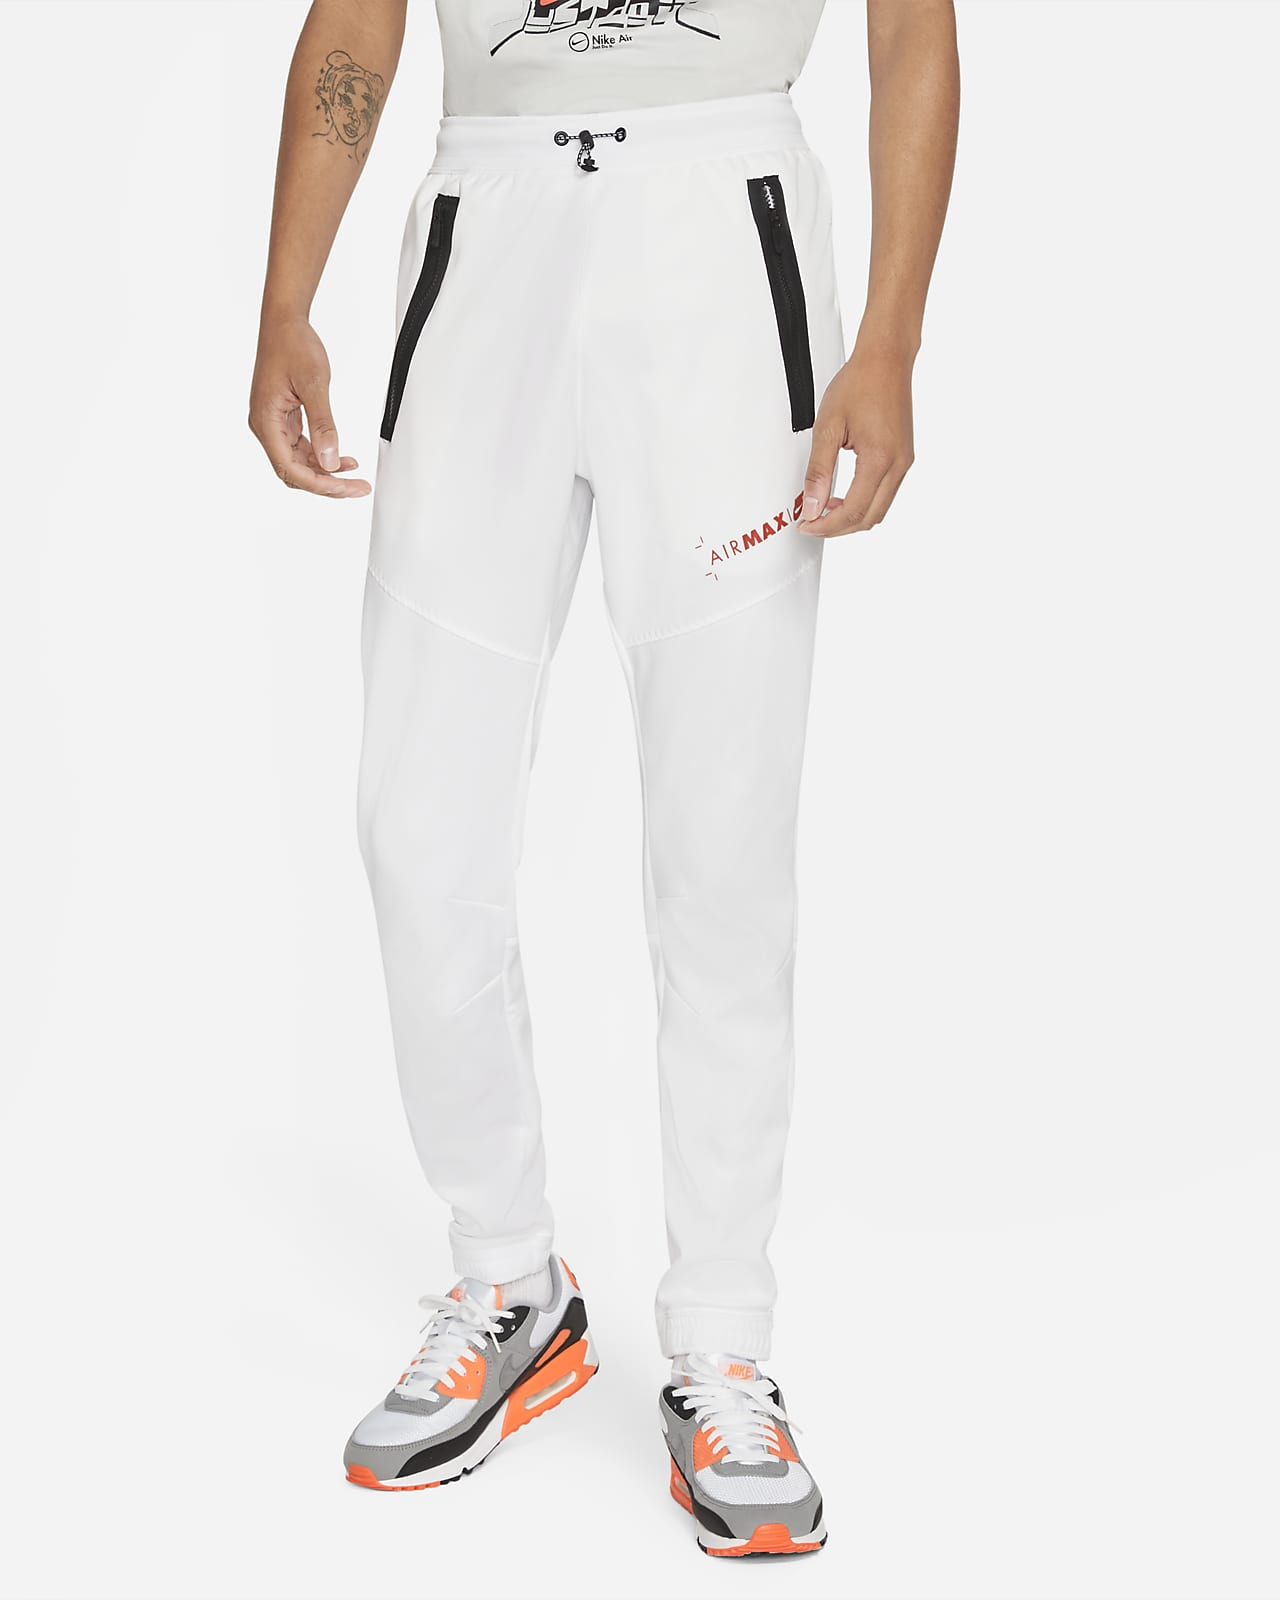 Nike Sportswear Air Max Pantalons de teixit Fleece - Home